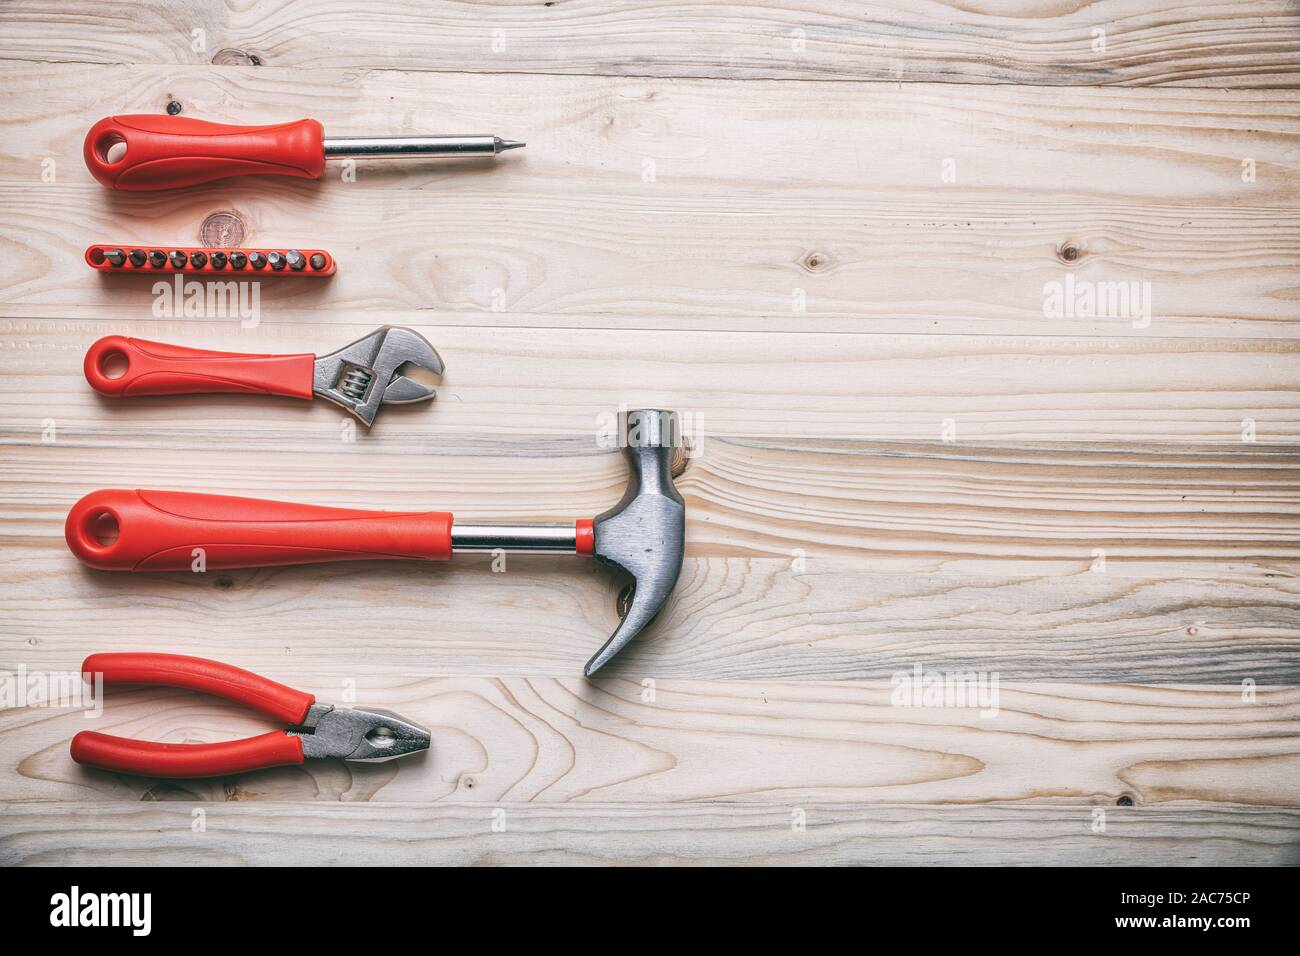 Hand tools set red color on wood, copy space, top view. DIY, repair, maintenance concept Stock Photo